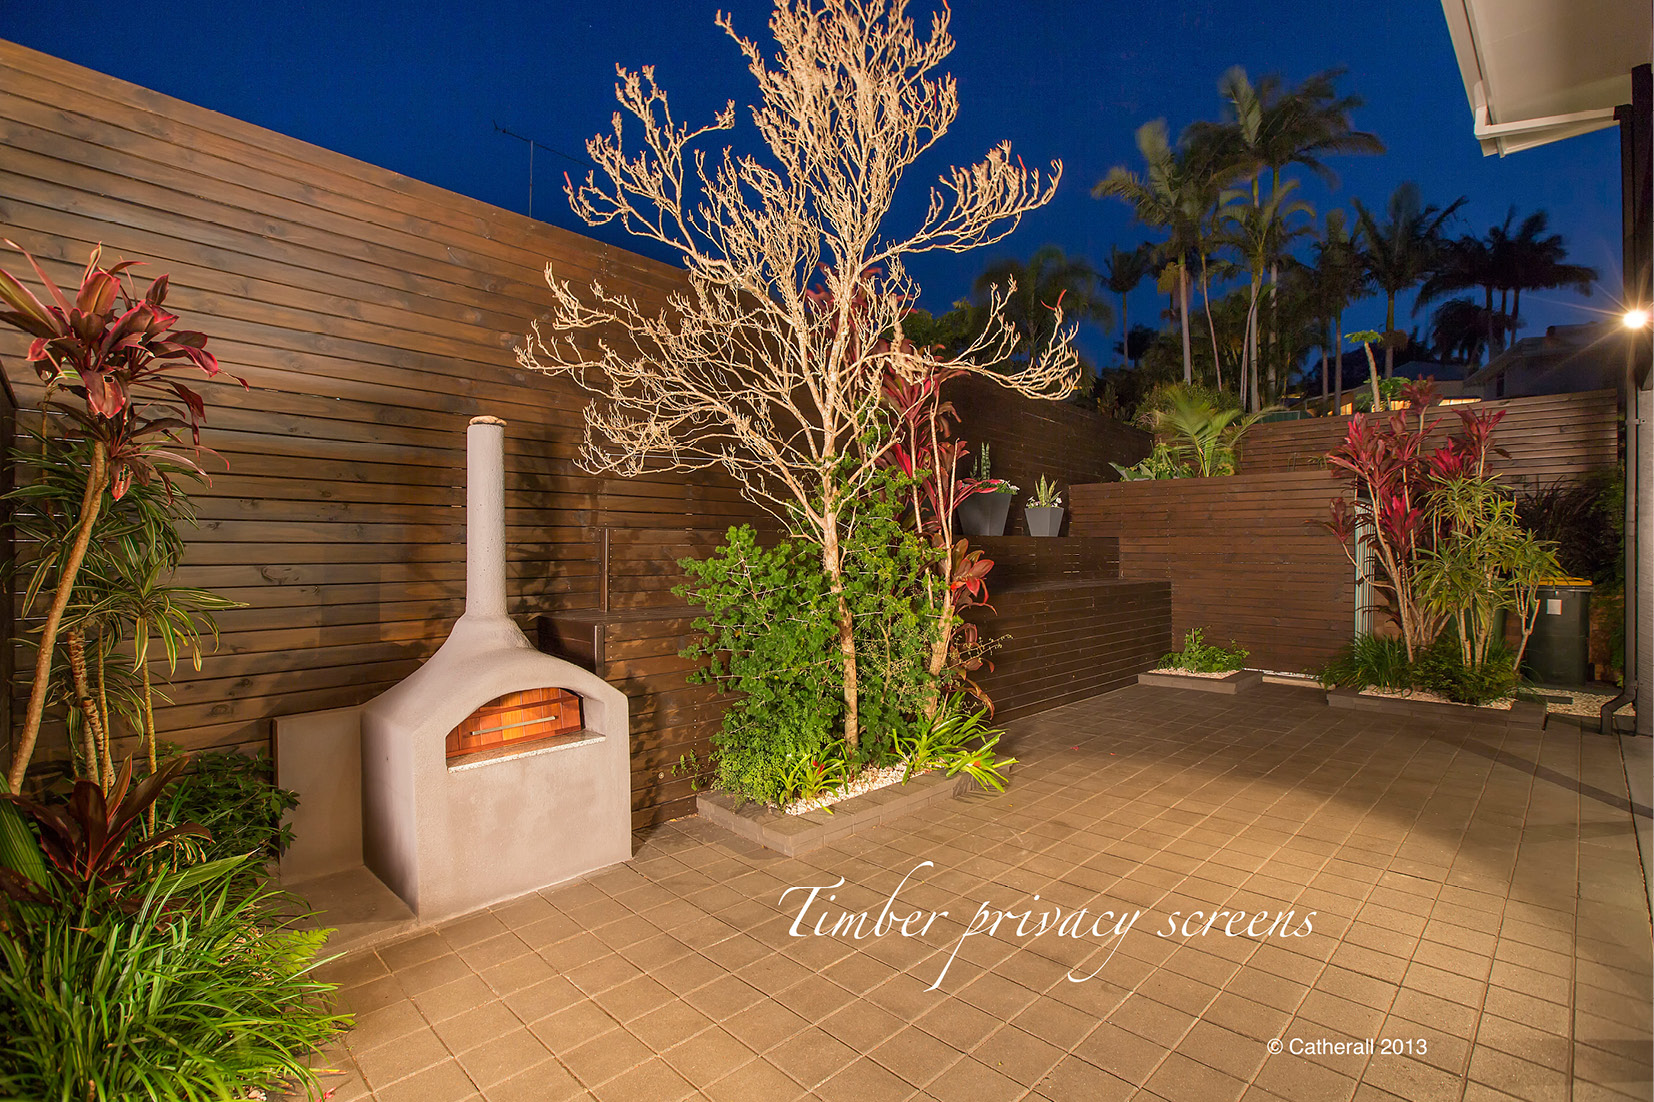 Sunshine Coast Structural Landscaping with timber privacy screens in this courtyard